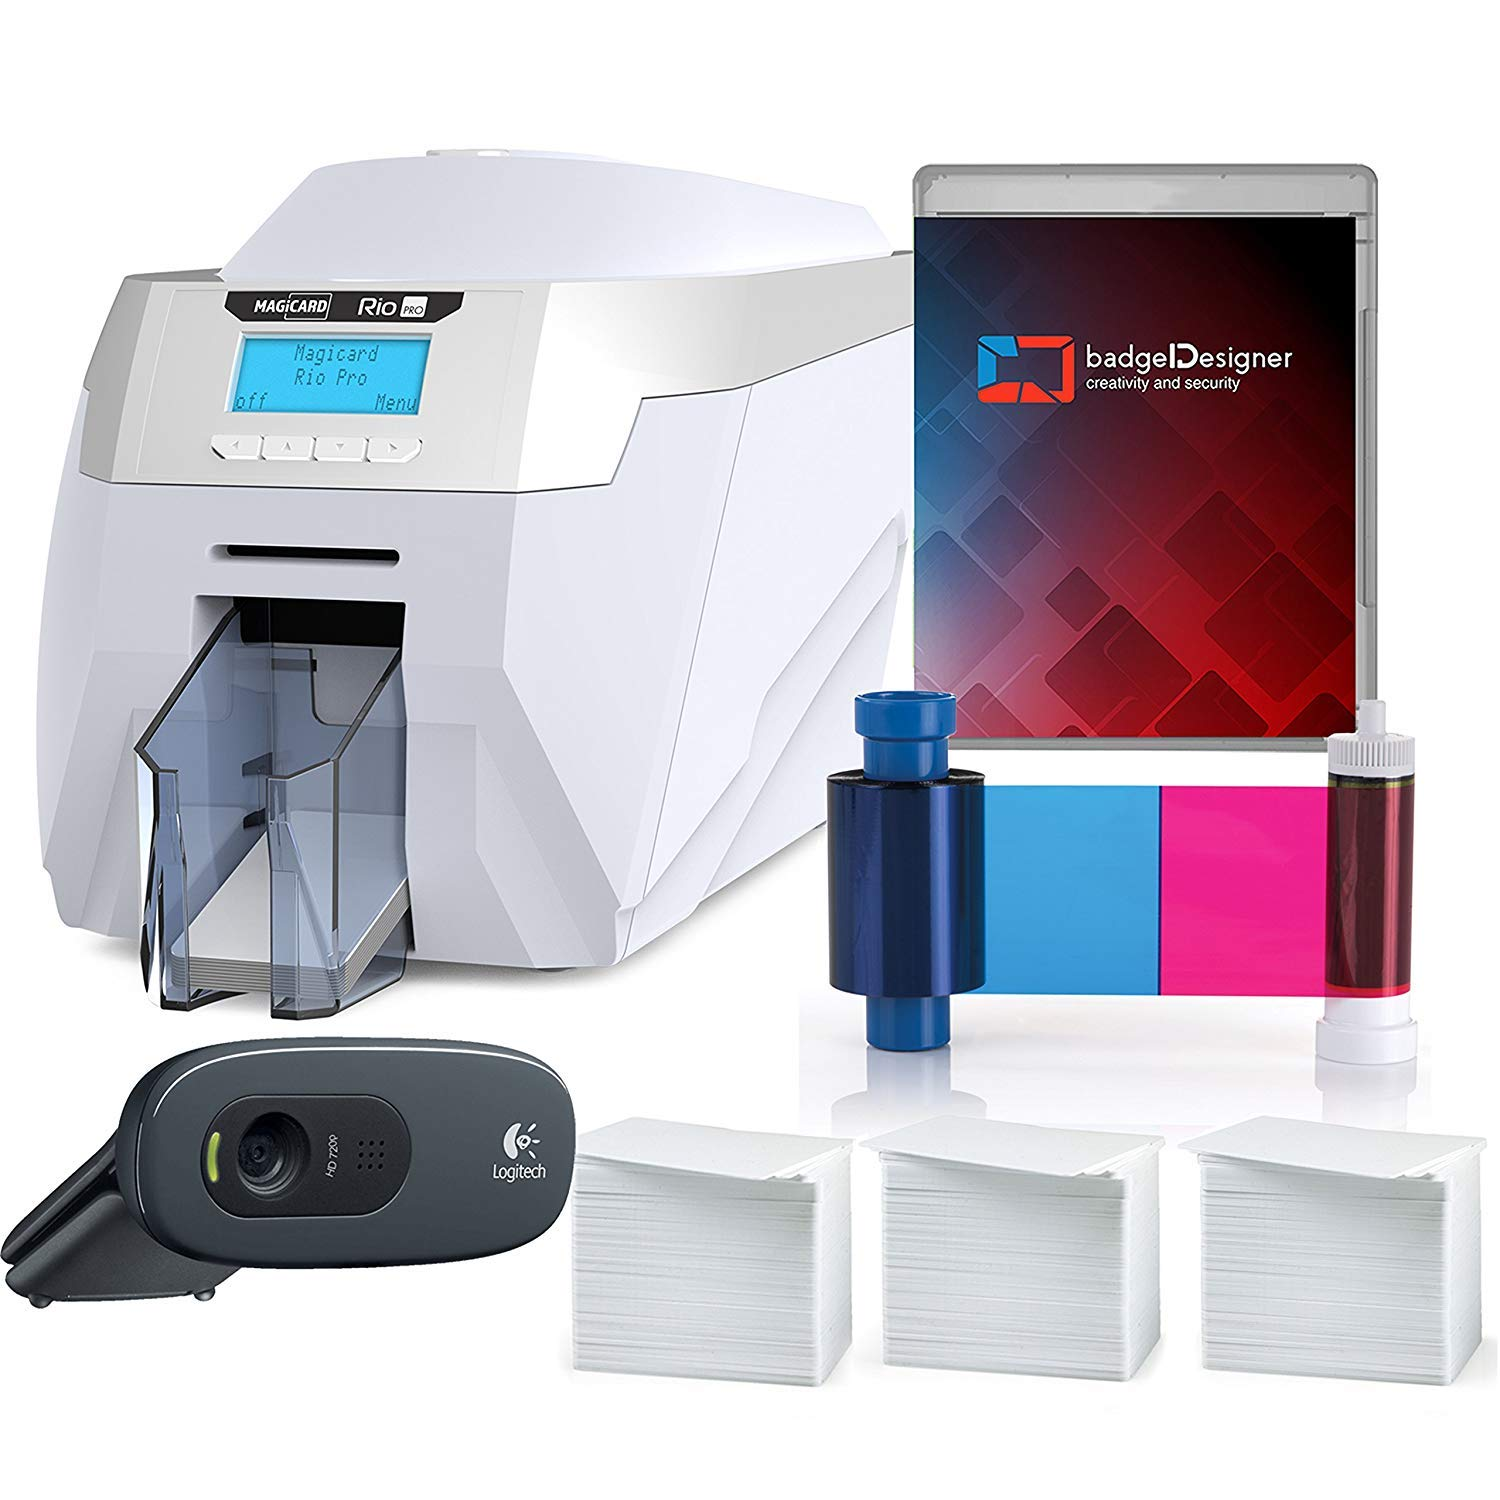 Magicard Rio Pro Single Sided ID Card Printer & Complete Supplies Package with badgeDesigner ID Software